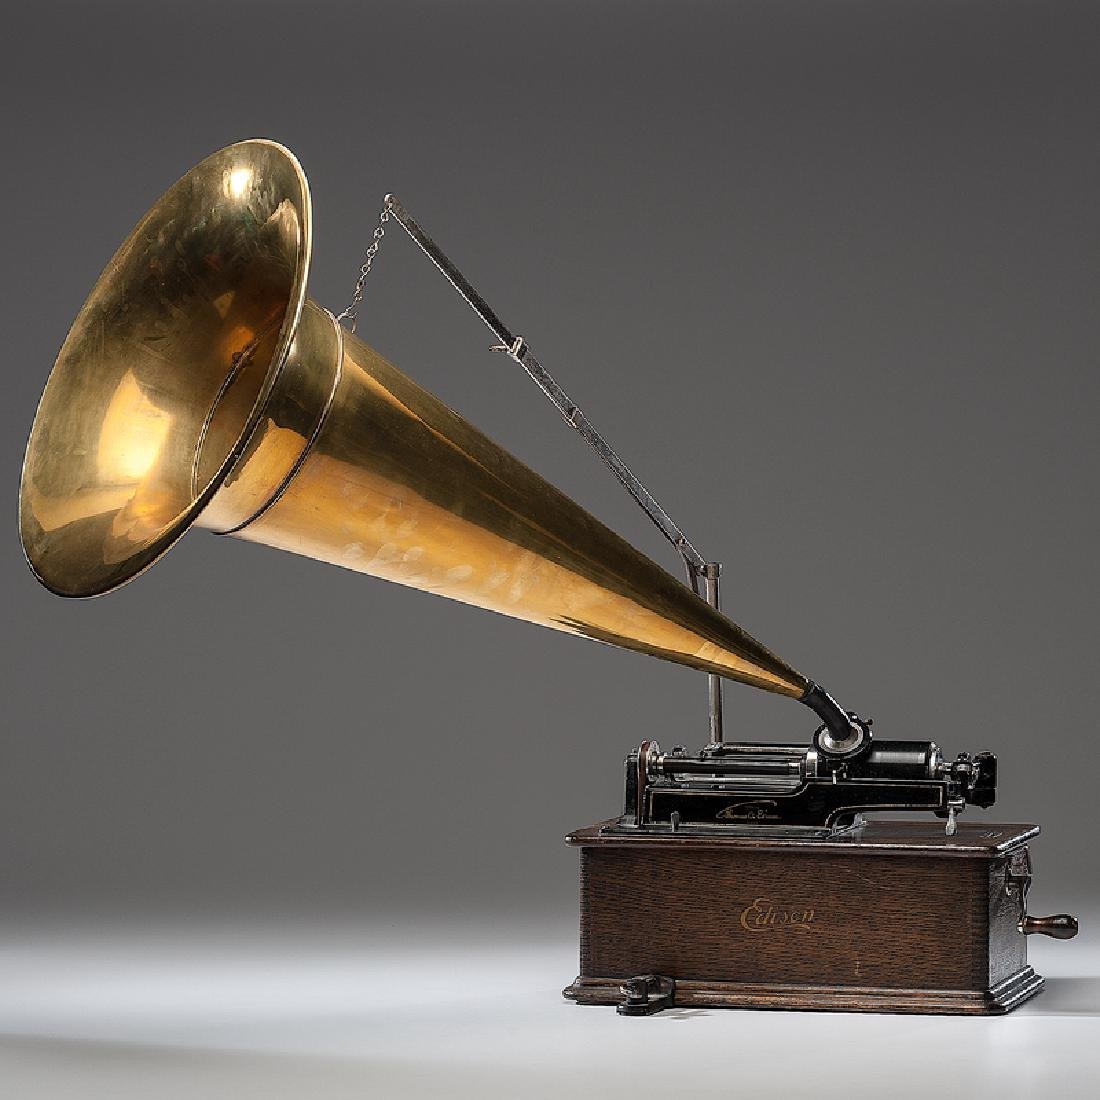 Edison Home Cylinder Phonograph with Cylinders